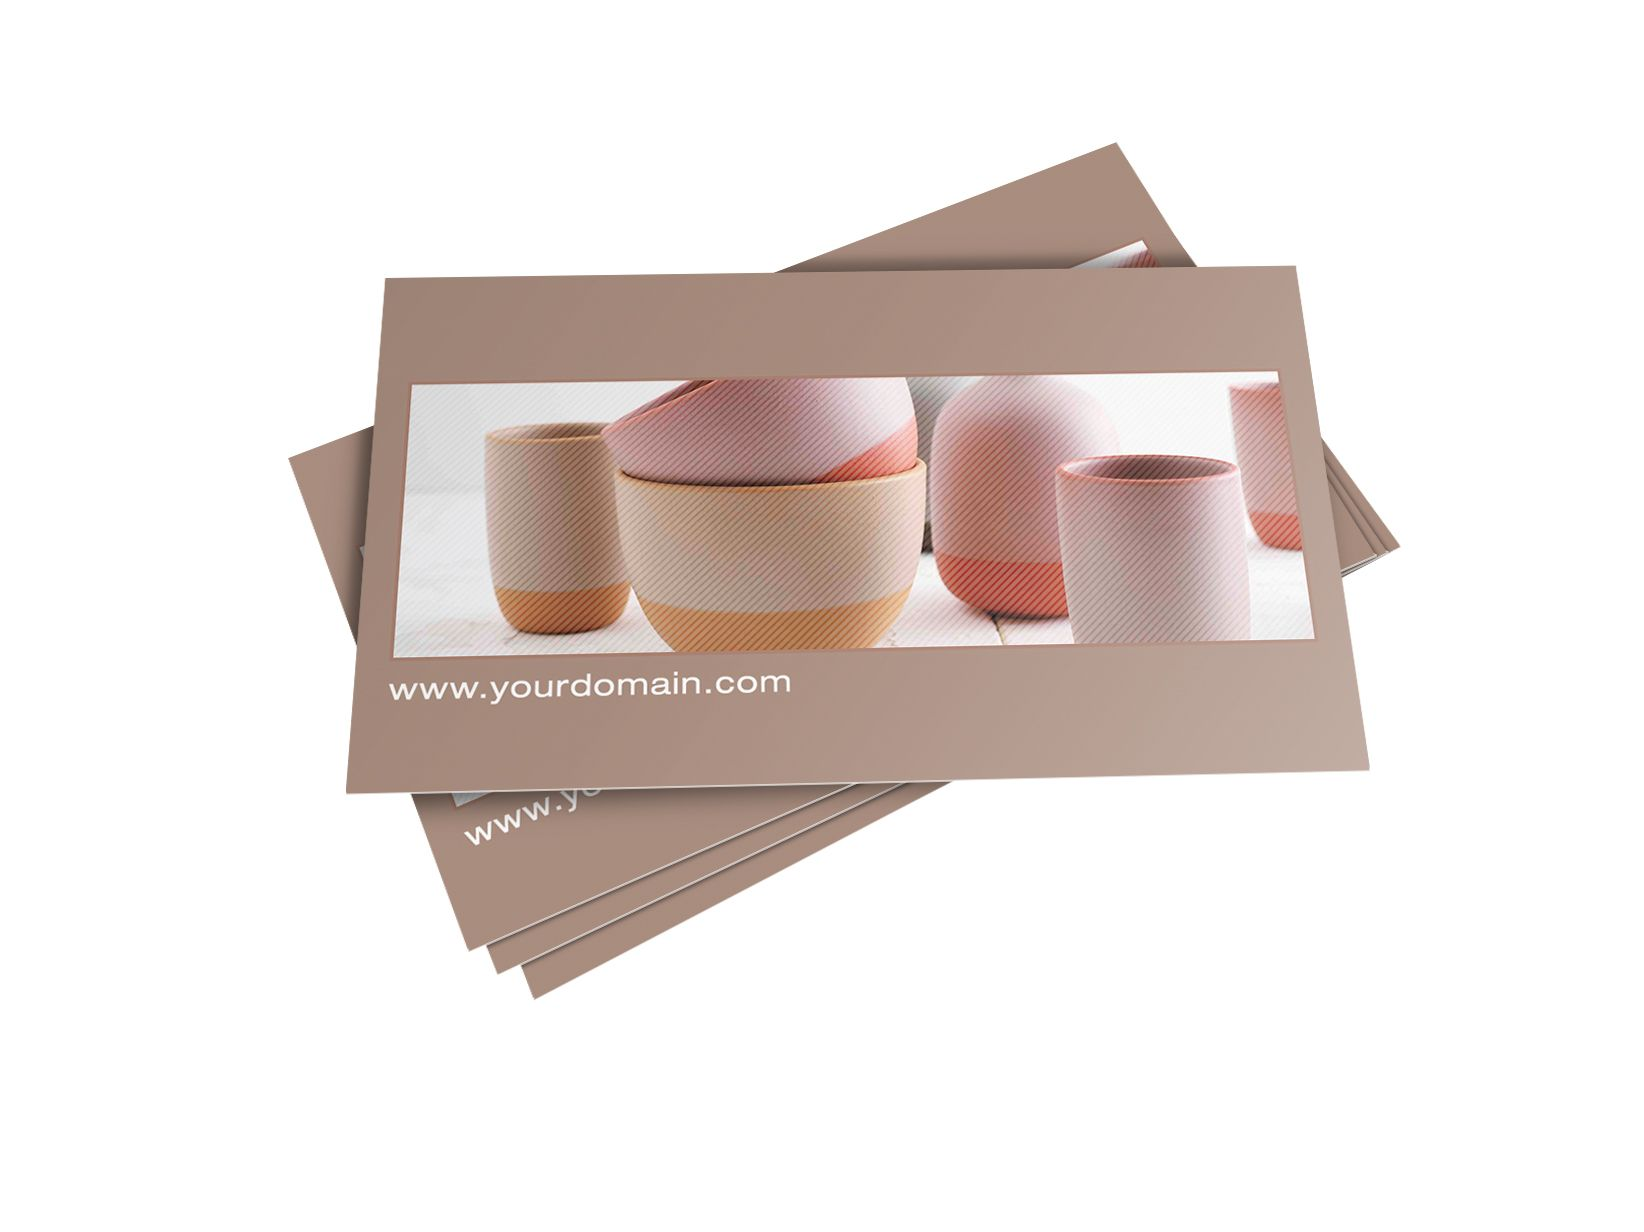 Ceramics interior design business card template for download i business cards templates free download wajeb Image collections